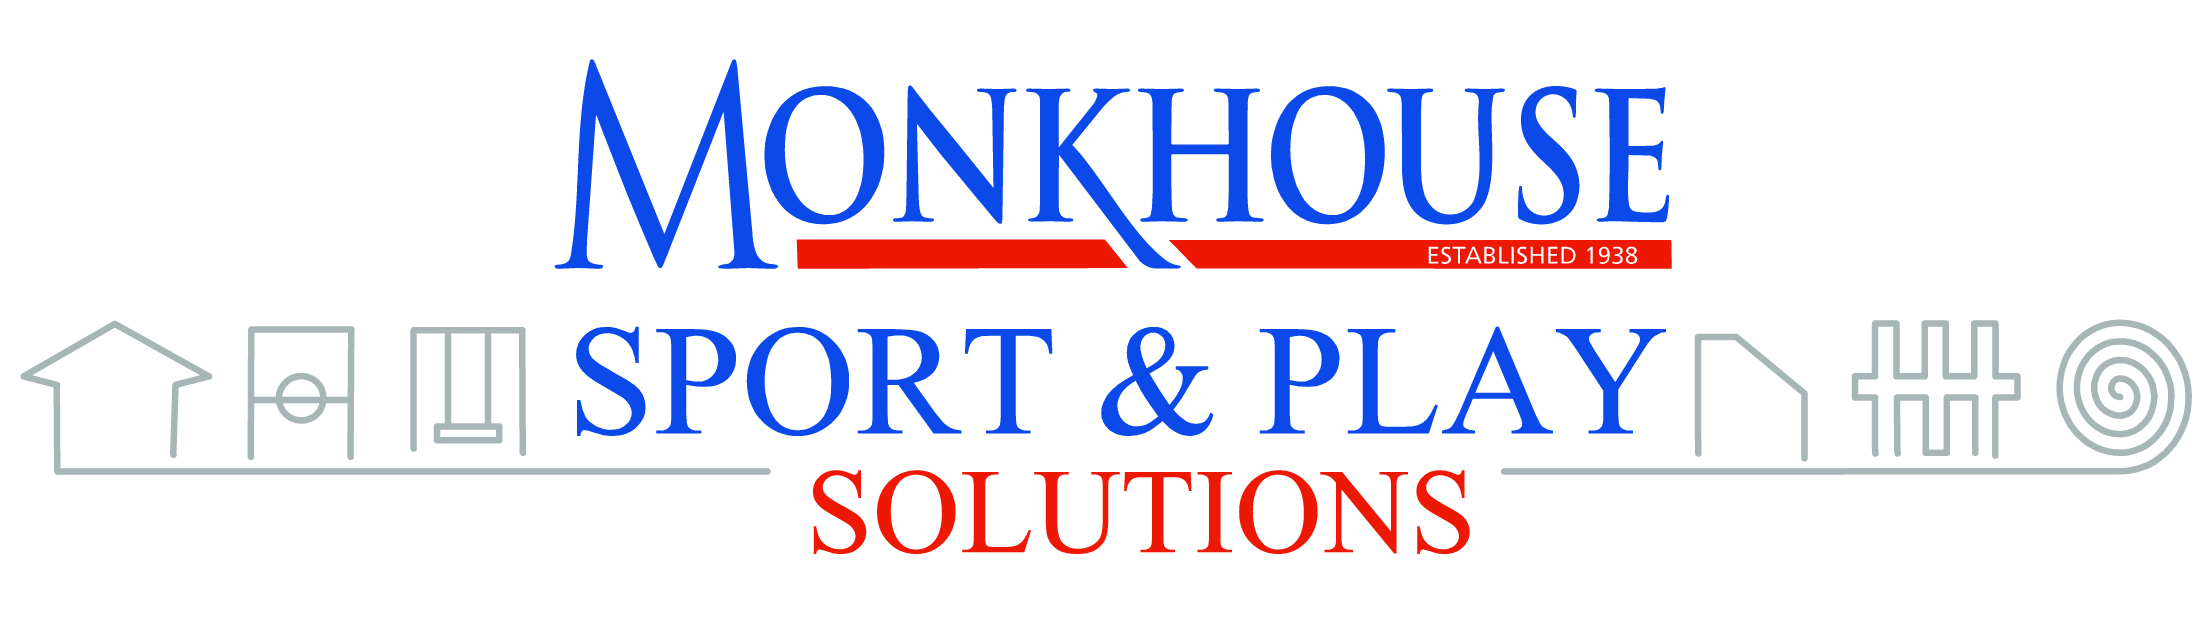 Monkhouse Sport and Play Solutions